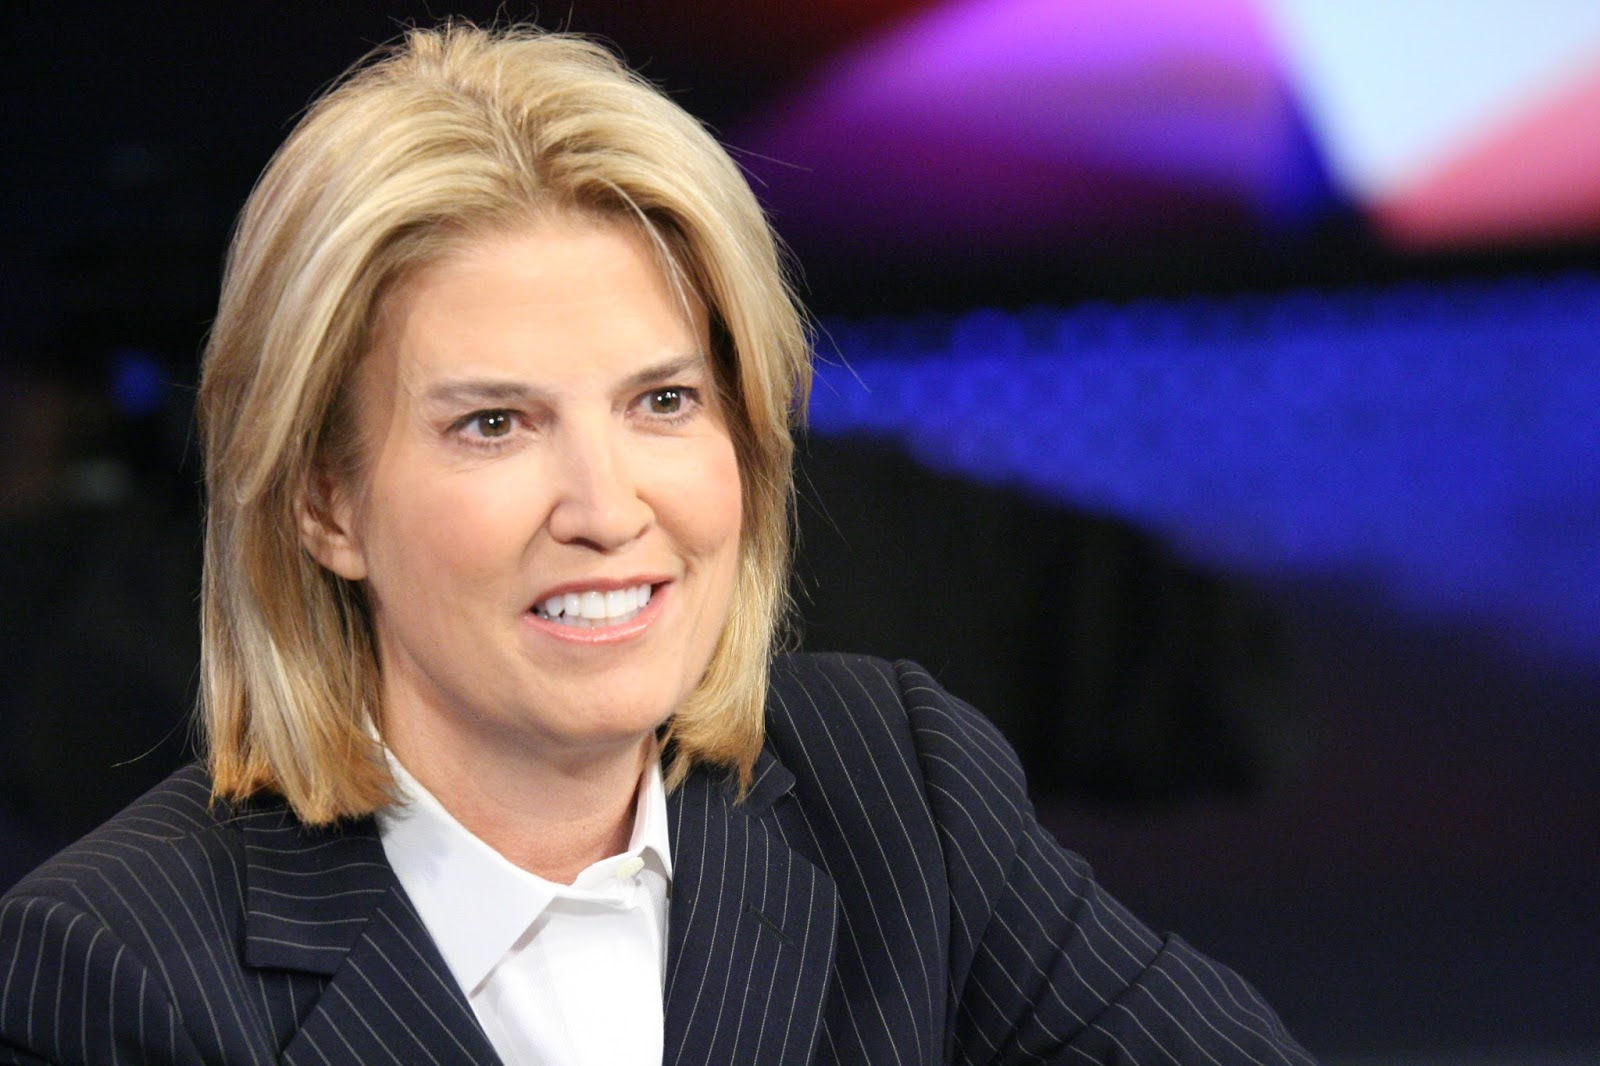 Biography Greta Van Susteren - American Commentator joins MSNBC to host new evening show For the Record